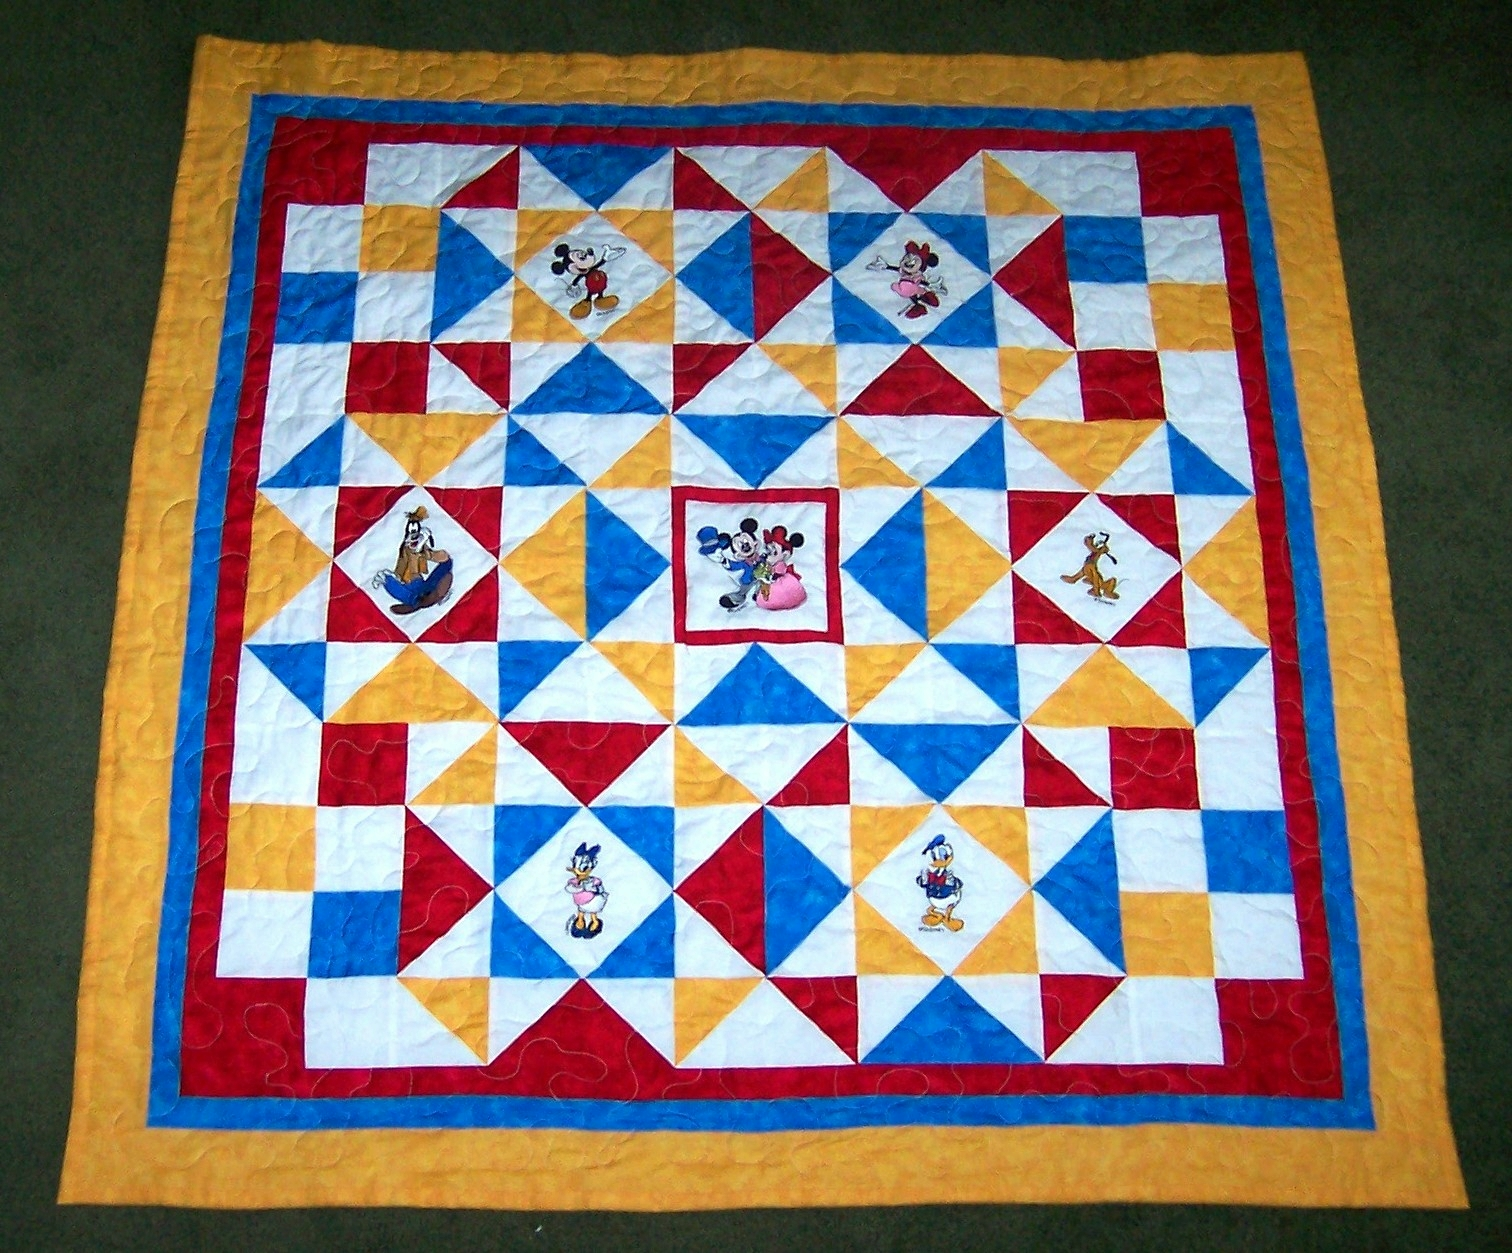 Jane's Quilting: Disney Quilts : disney quilts - Adamdwight.com